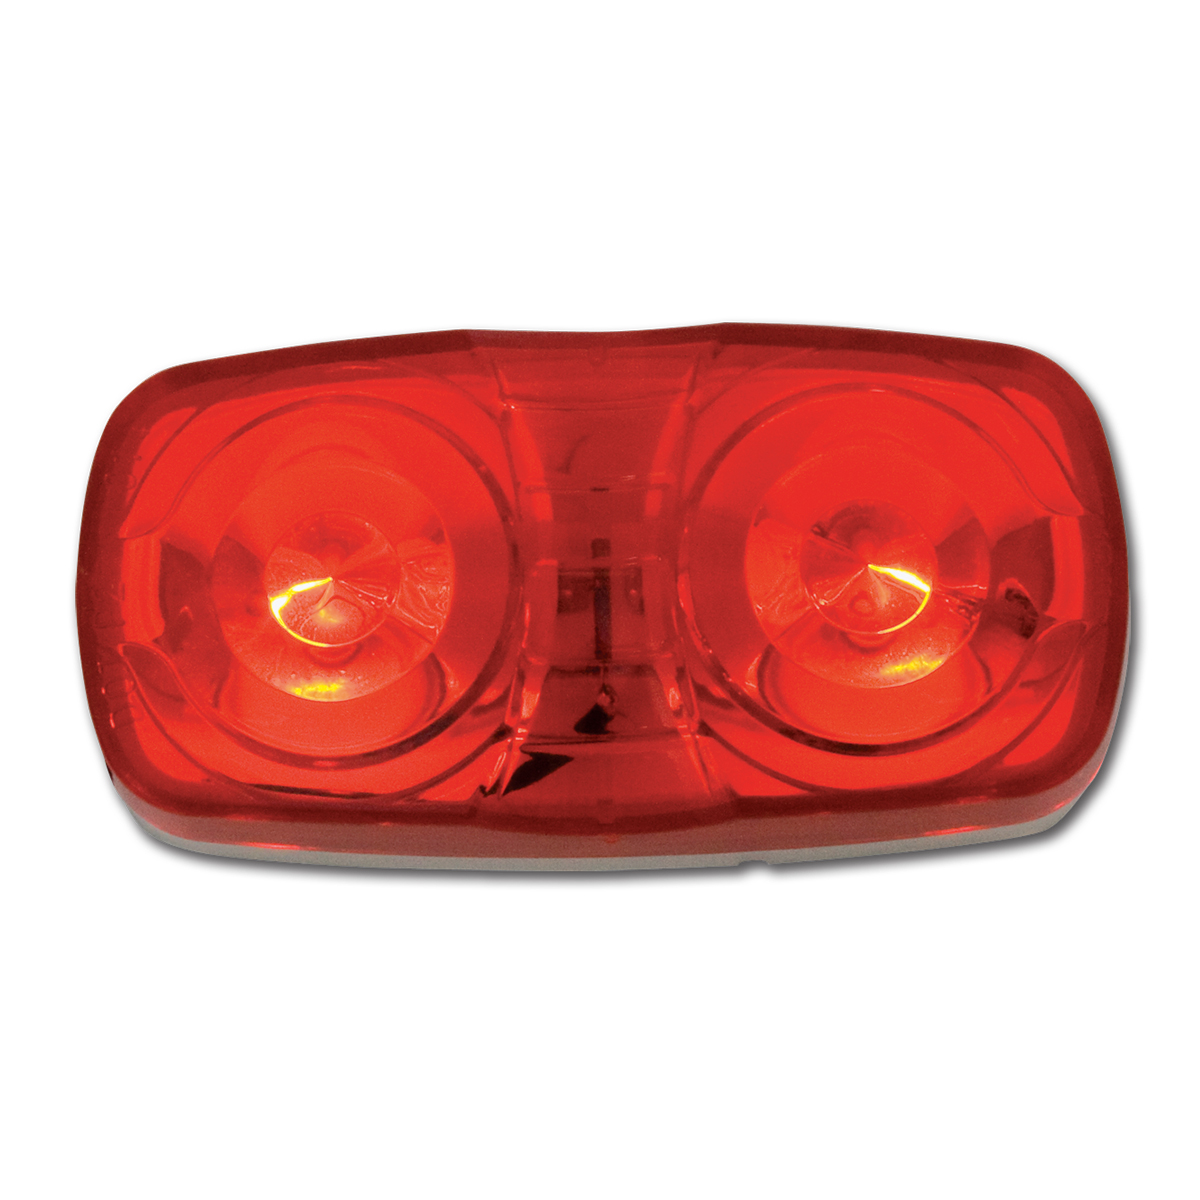 #82925 Tiger Eye Two-Bulb Red Light with White Plastic Base